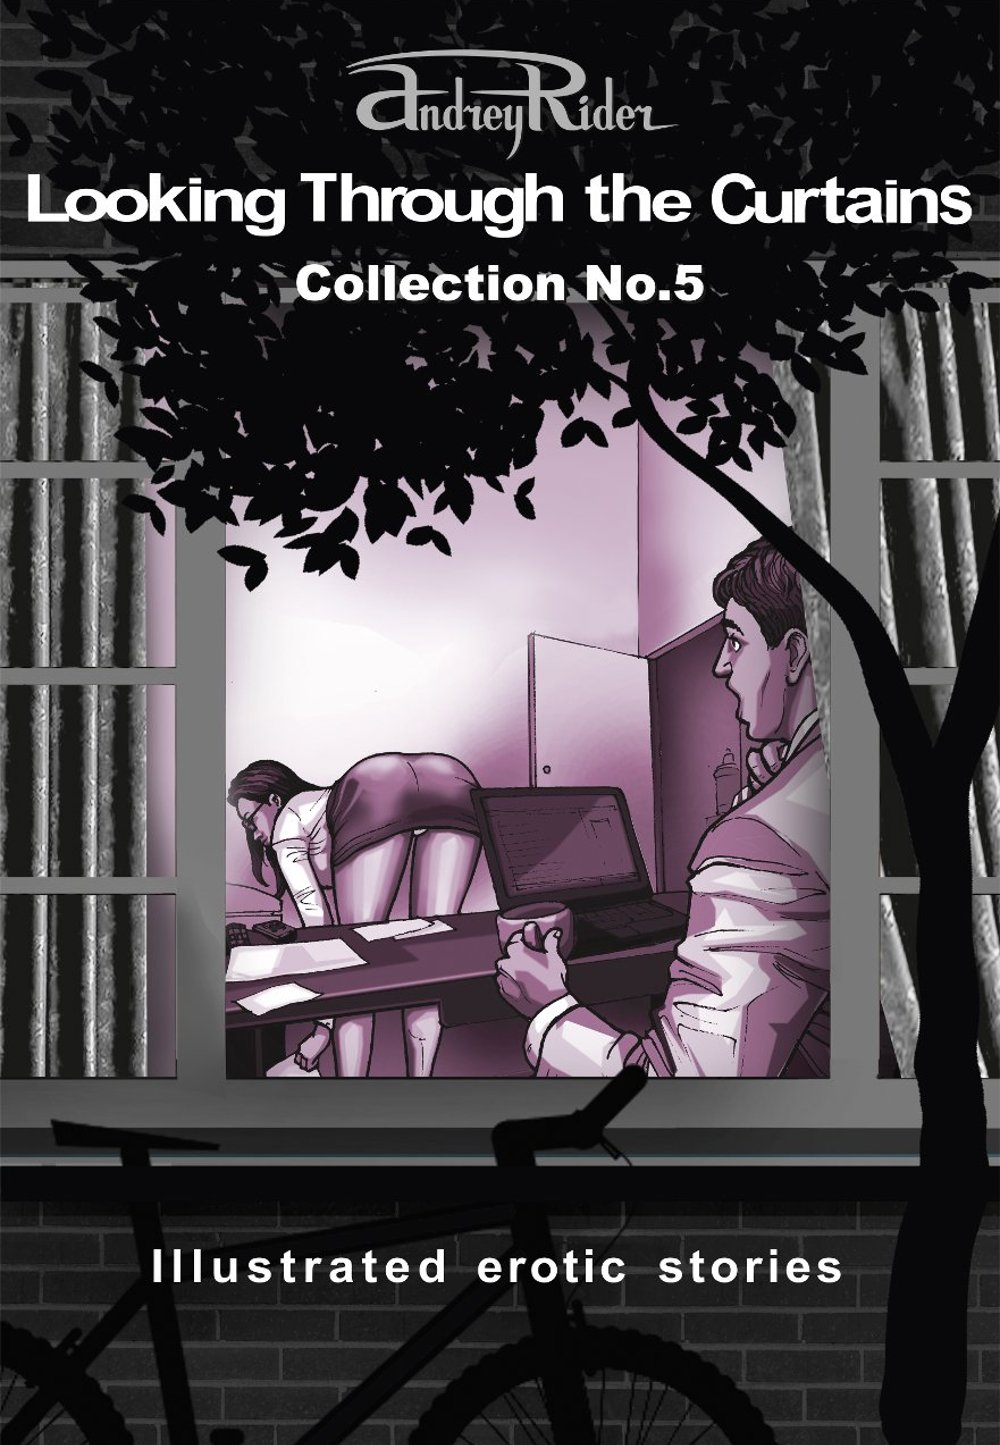 Collection of Erotic Stories No.5